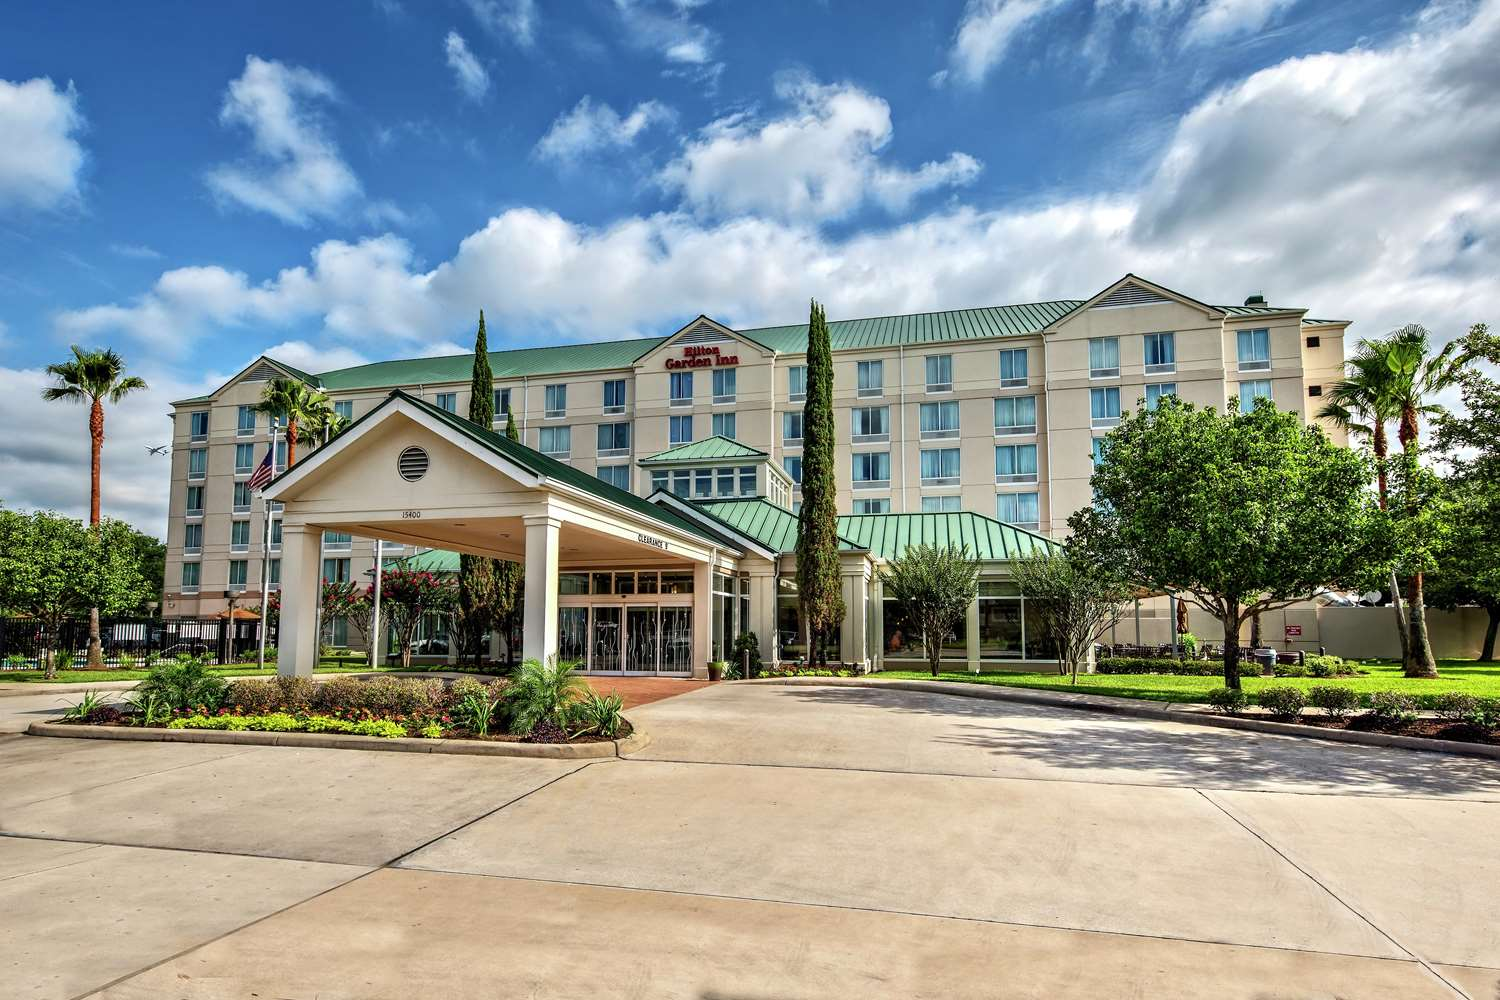 Hilton Garden Inn Bush Airport Houston